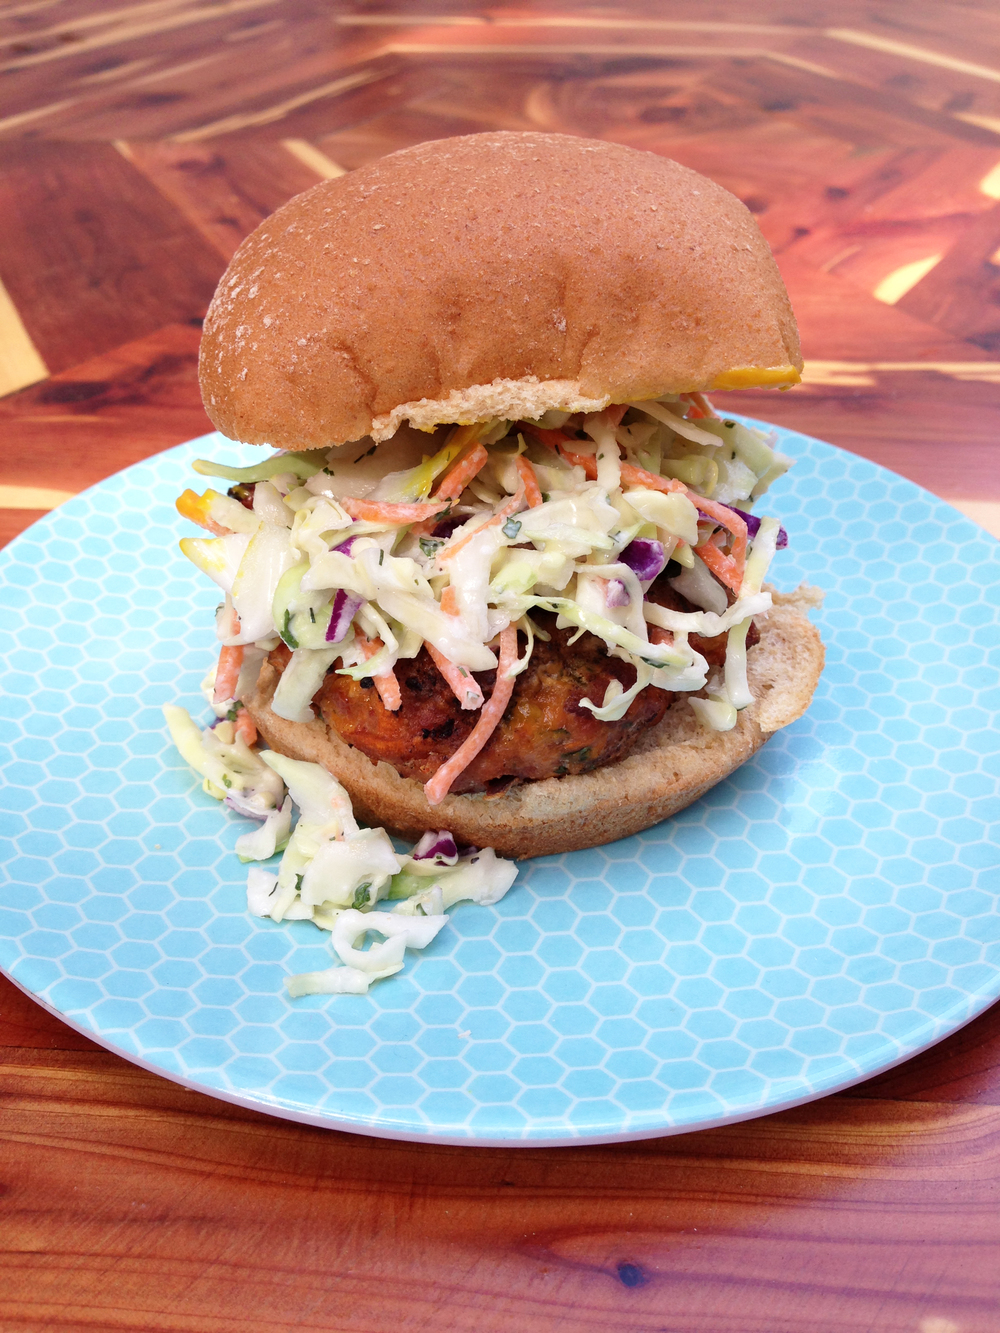 These aren't your average turkey burgers. They have a spicy kick that ...